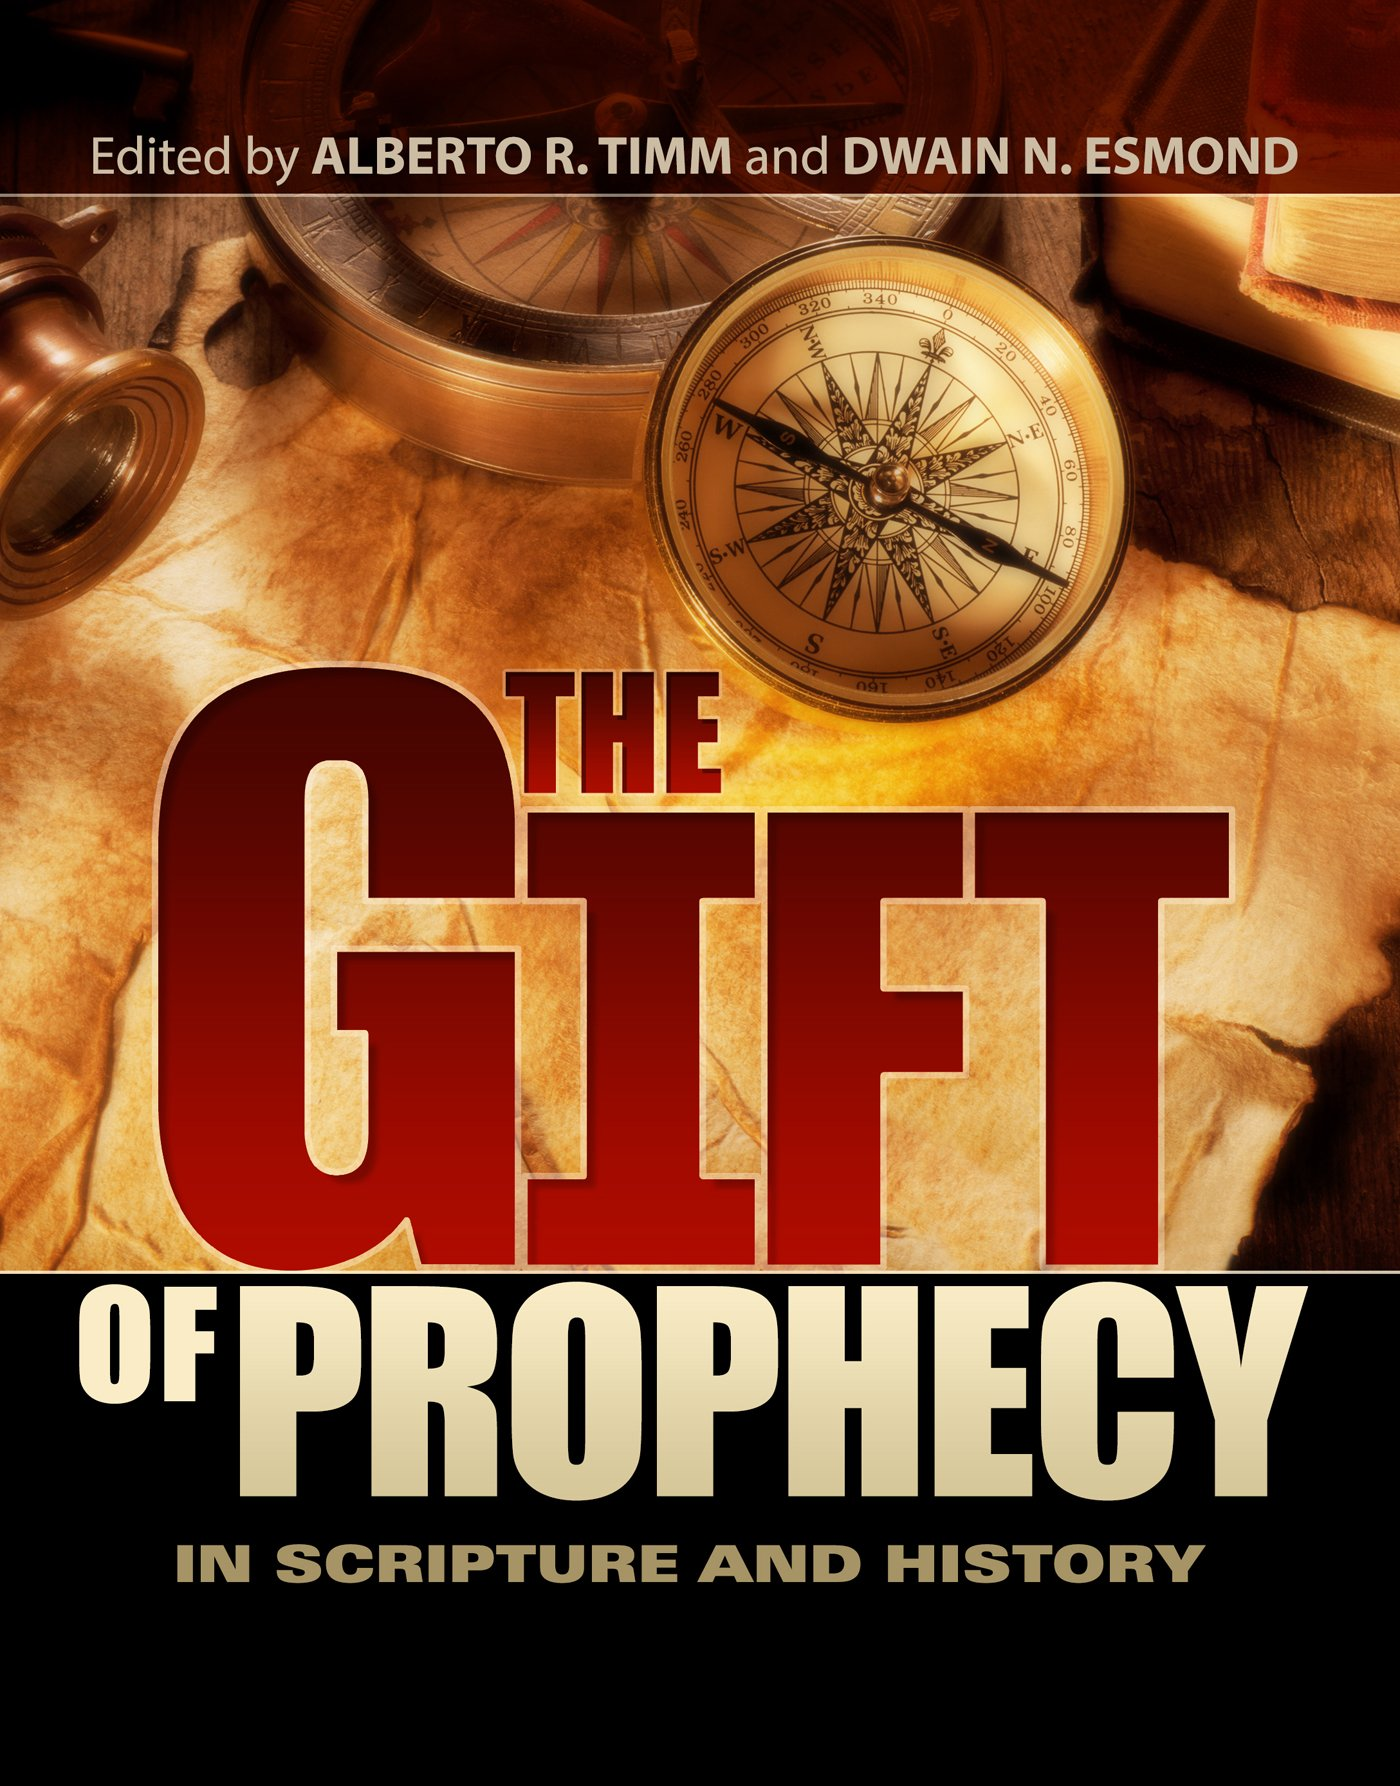 The Gift of Prophecy in Scripture and History Hardcover – October 28, 2015